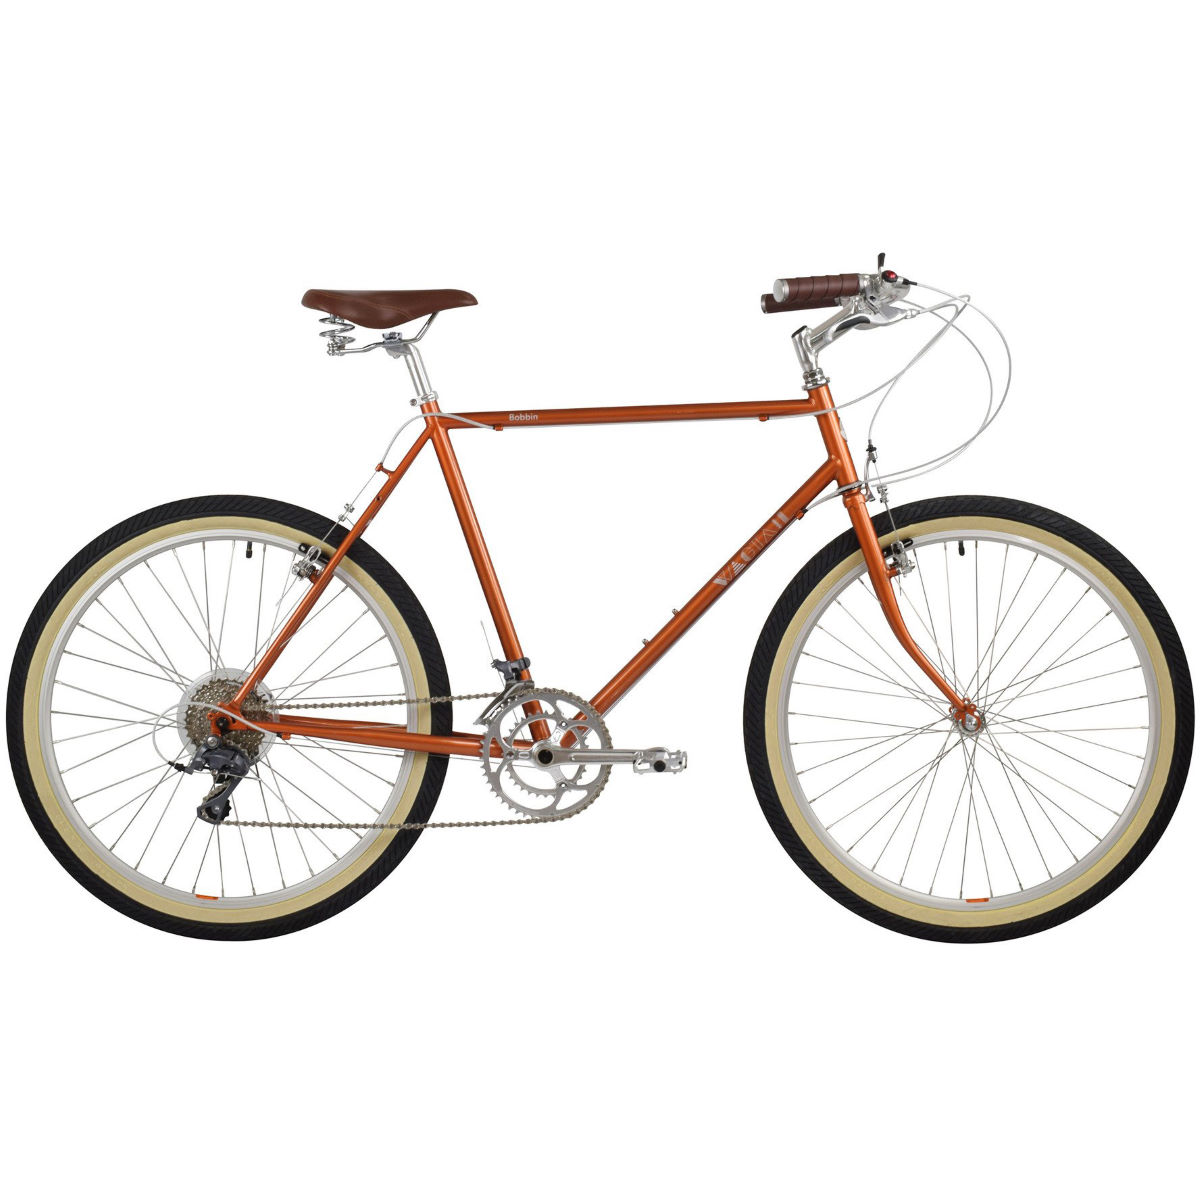 Vélo hybride Bobbin Wagtail (2017) - 46cm Stock Bike Copper